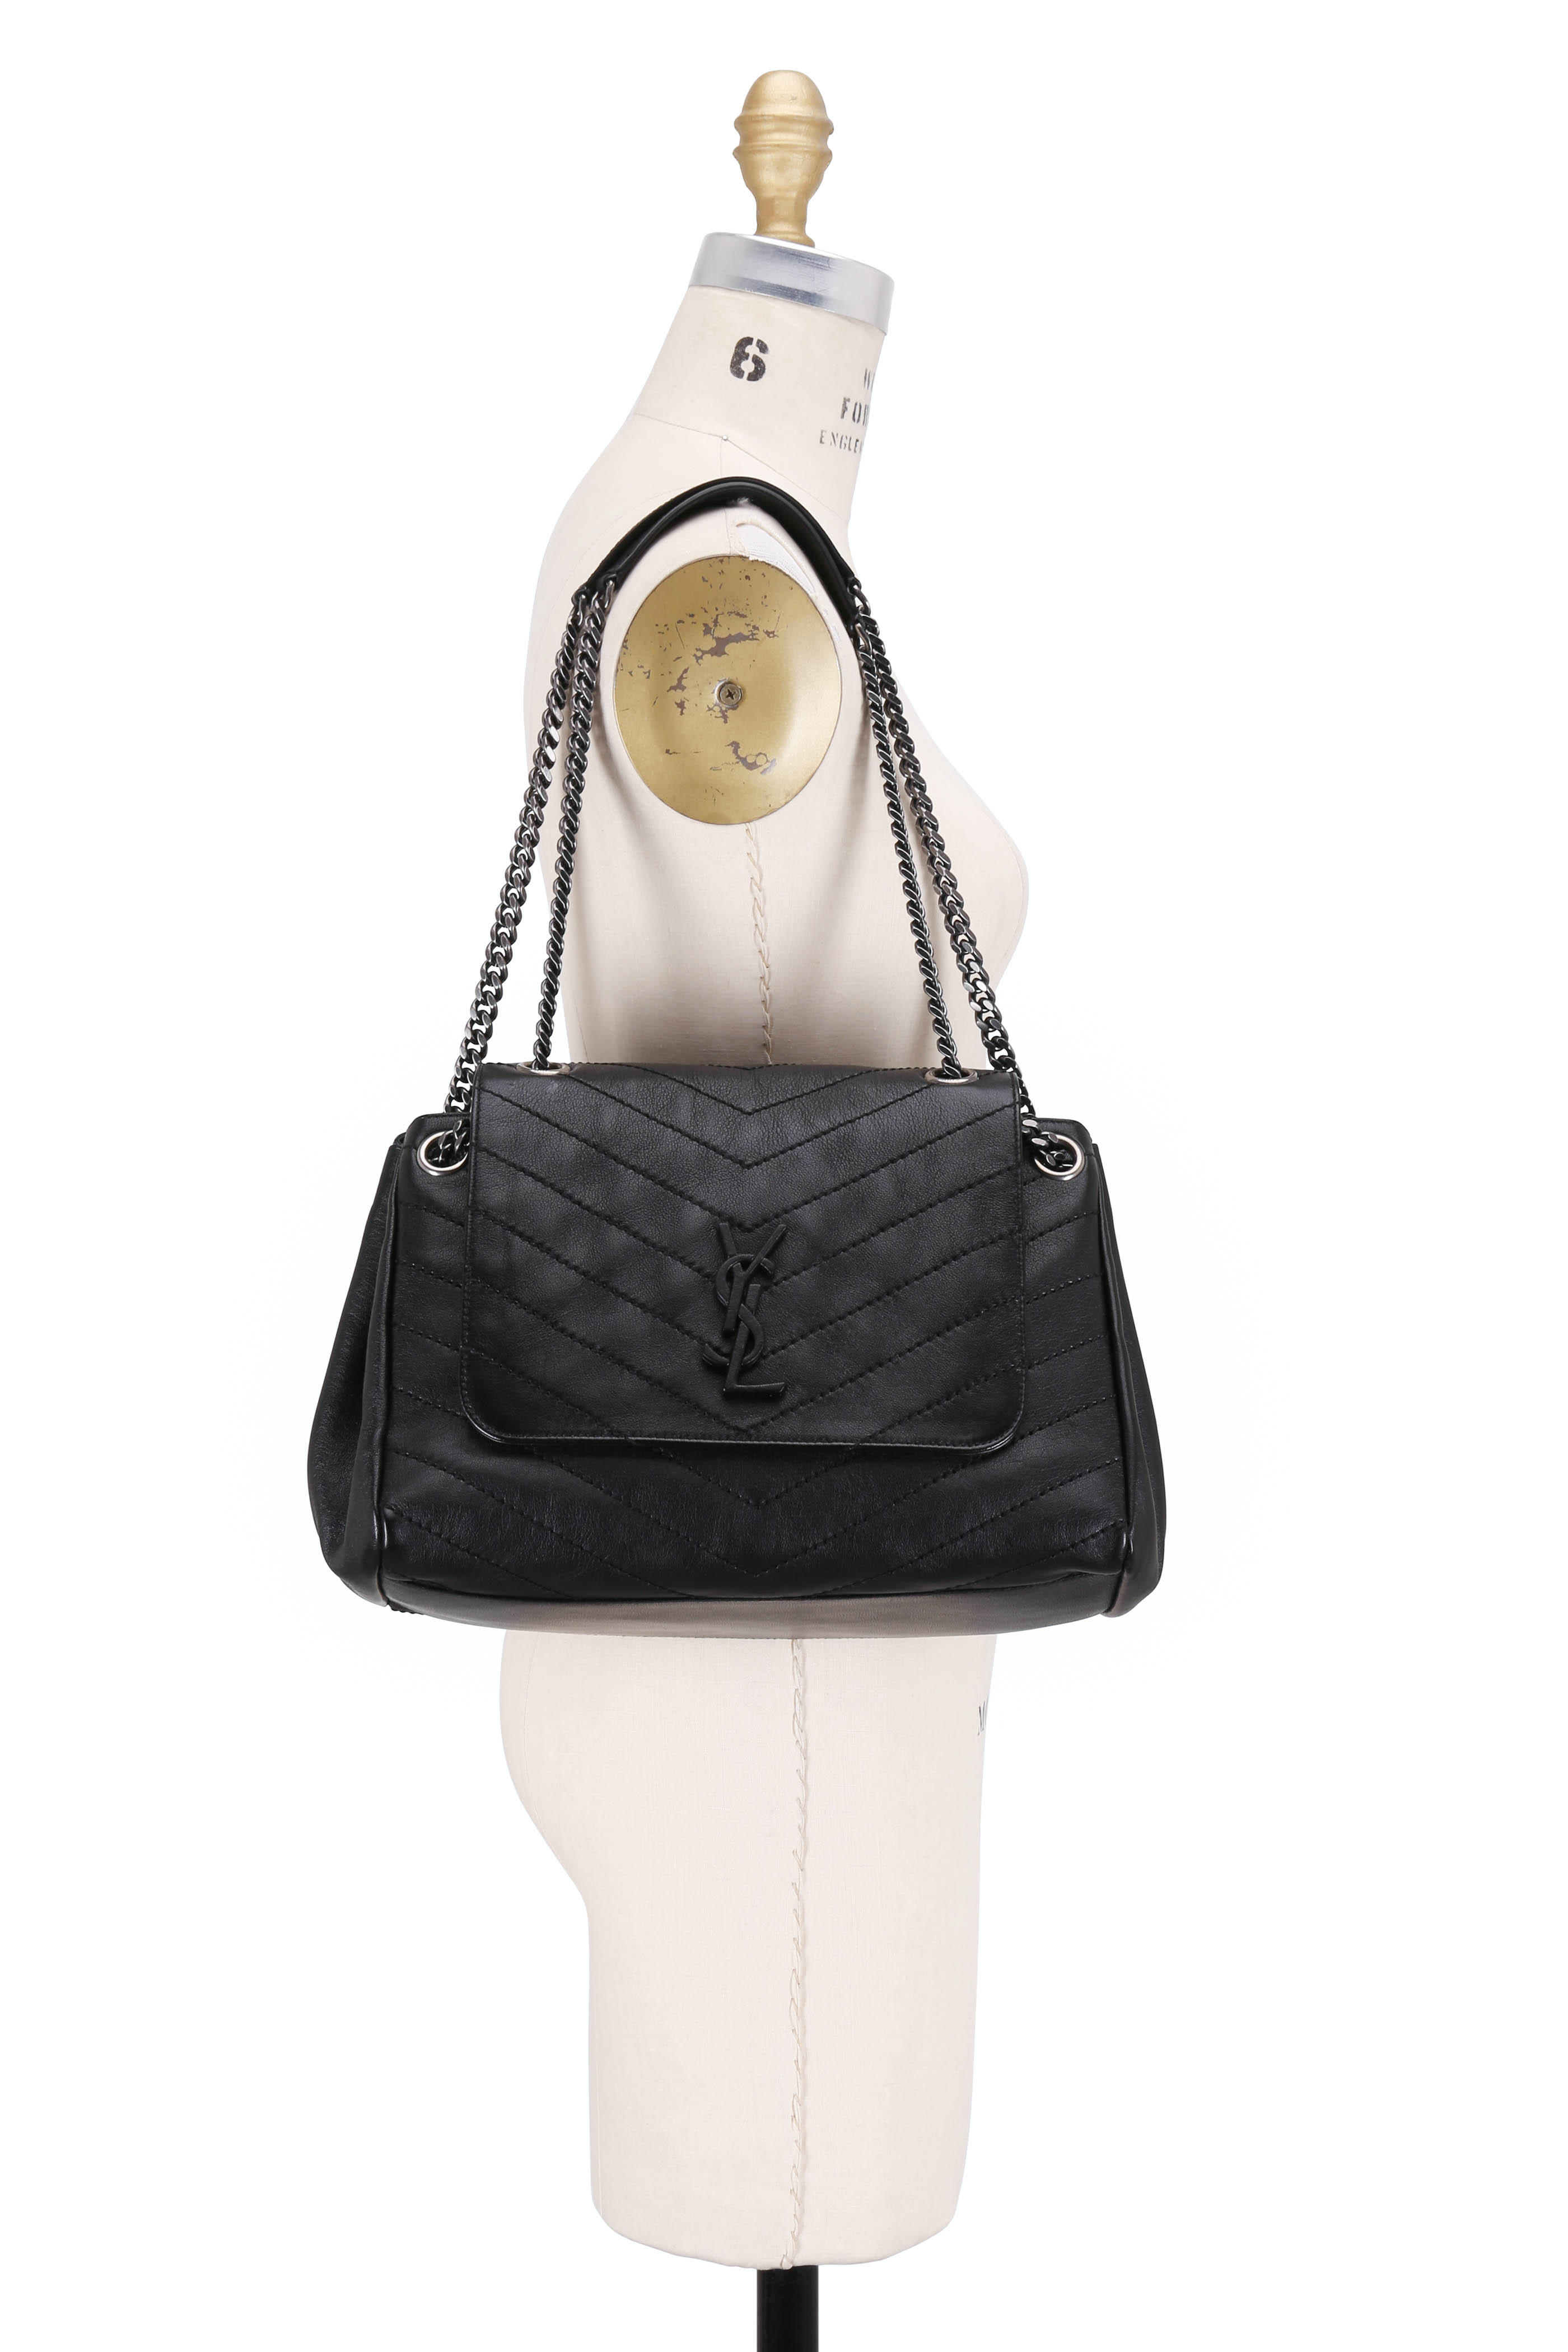 a1694786cb9 Saint Laurent - Nolita Monogram Black Vintage Leather Large Bag ...